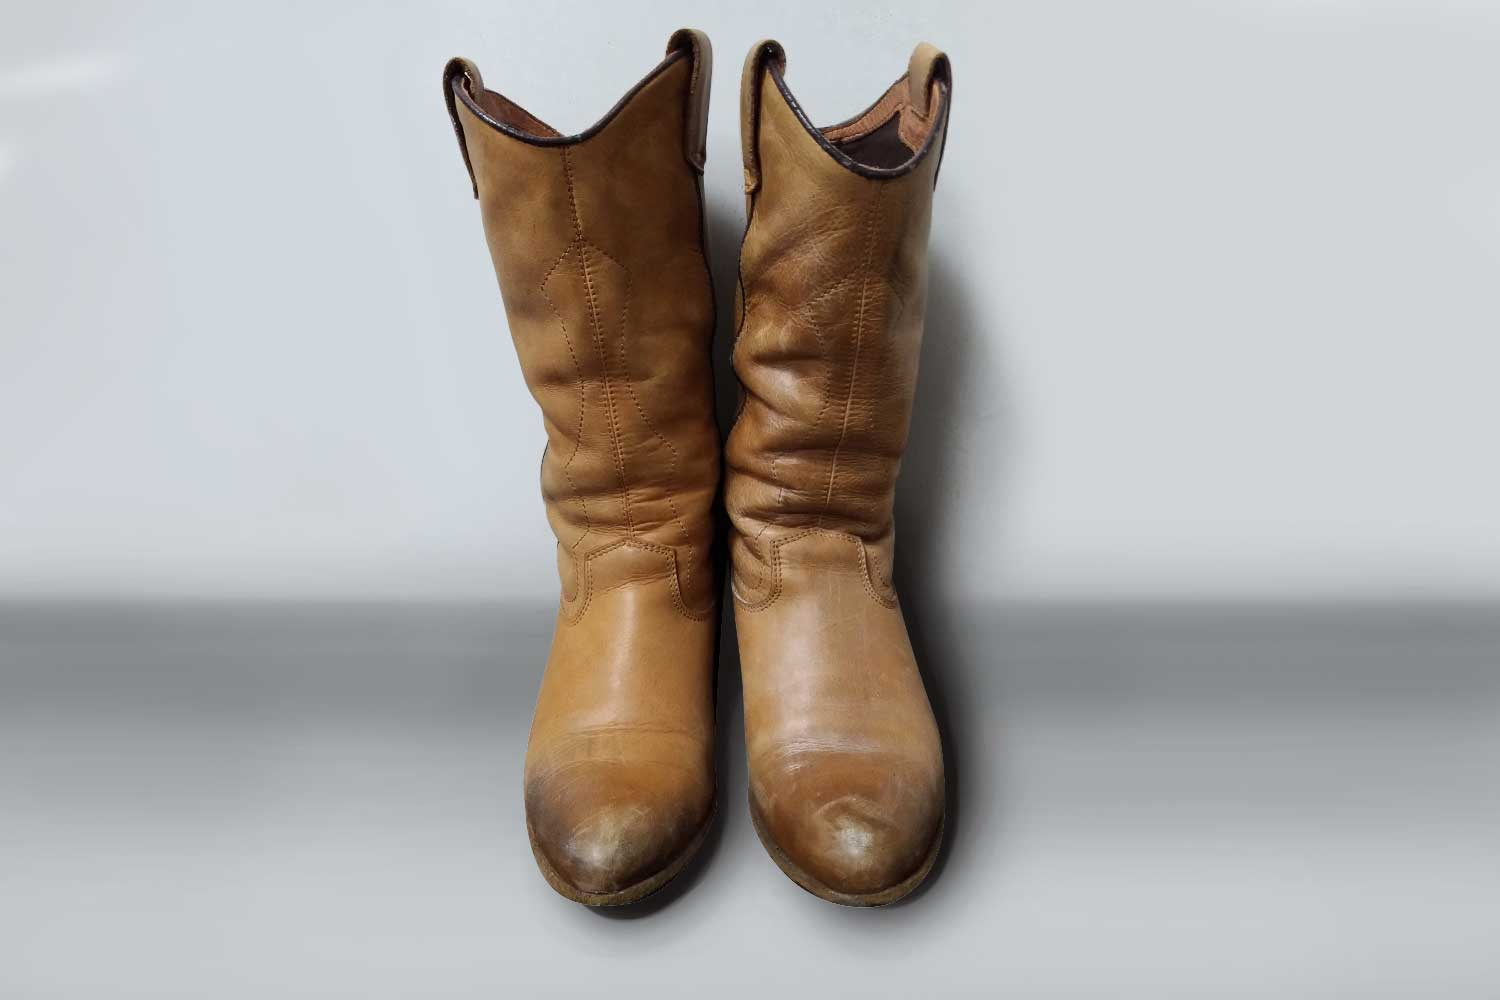 https://leather-pro.com/wp-content/uploads/2018/05/news_sacha_boots_before_1500.jpg